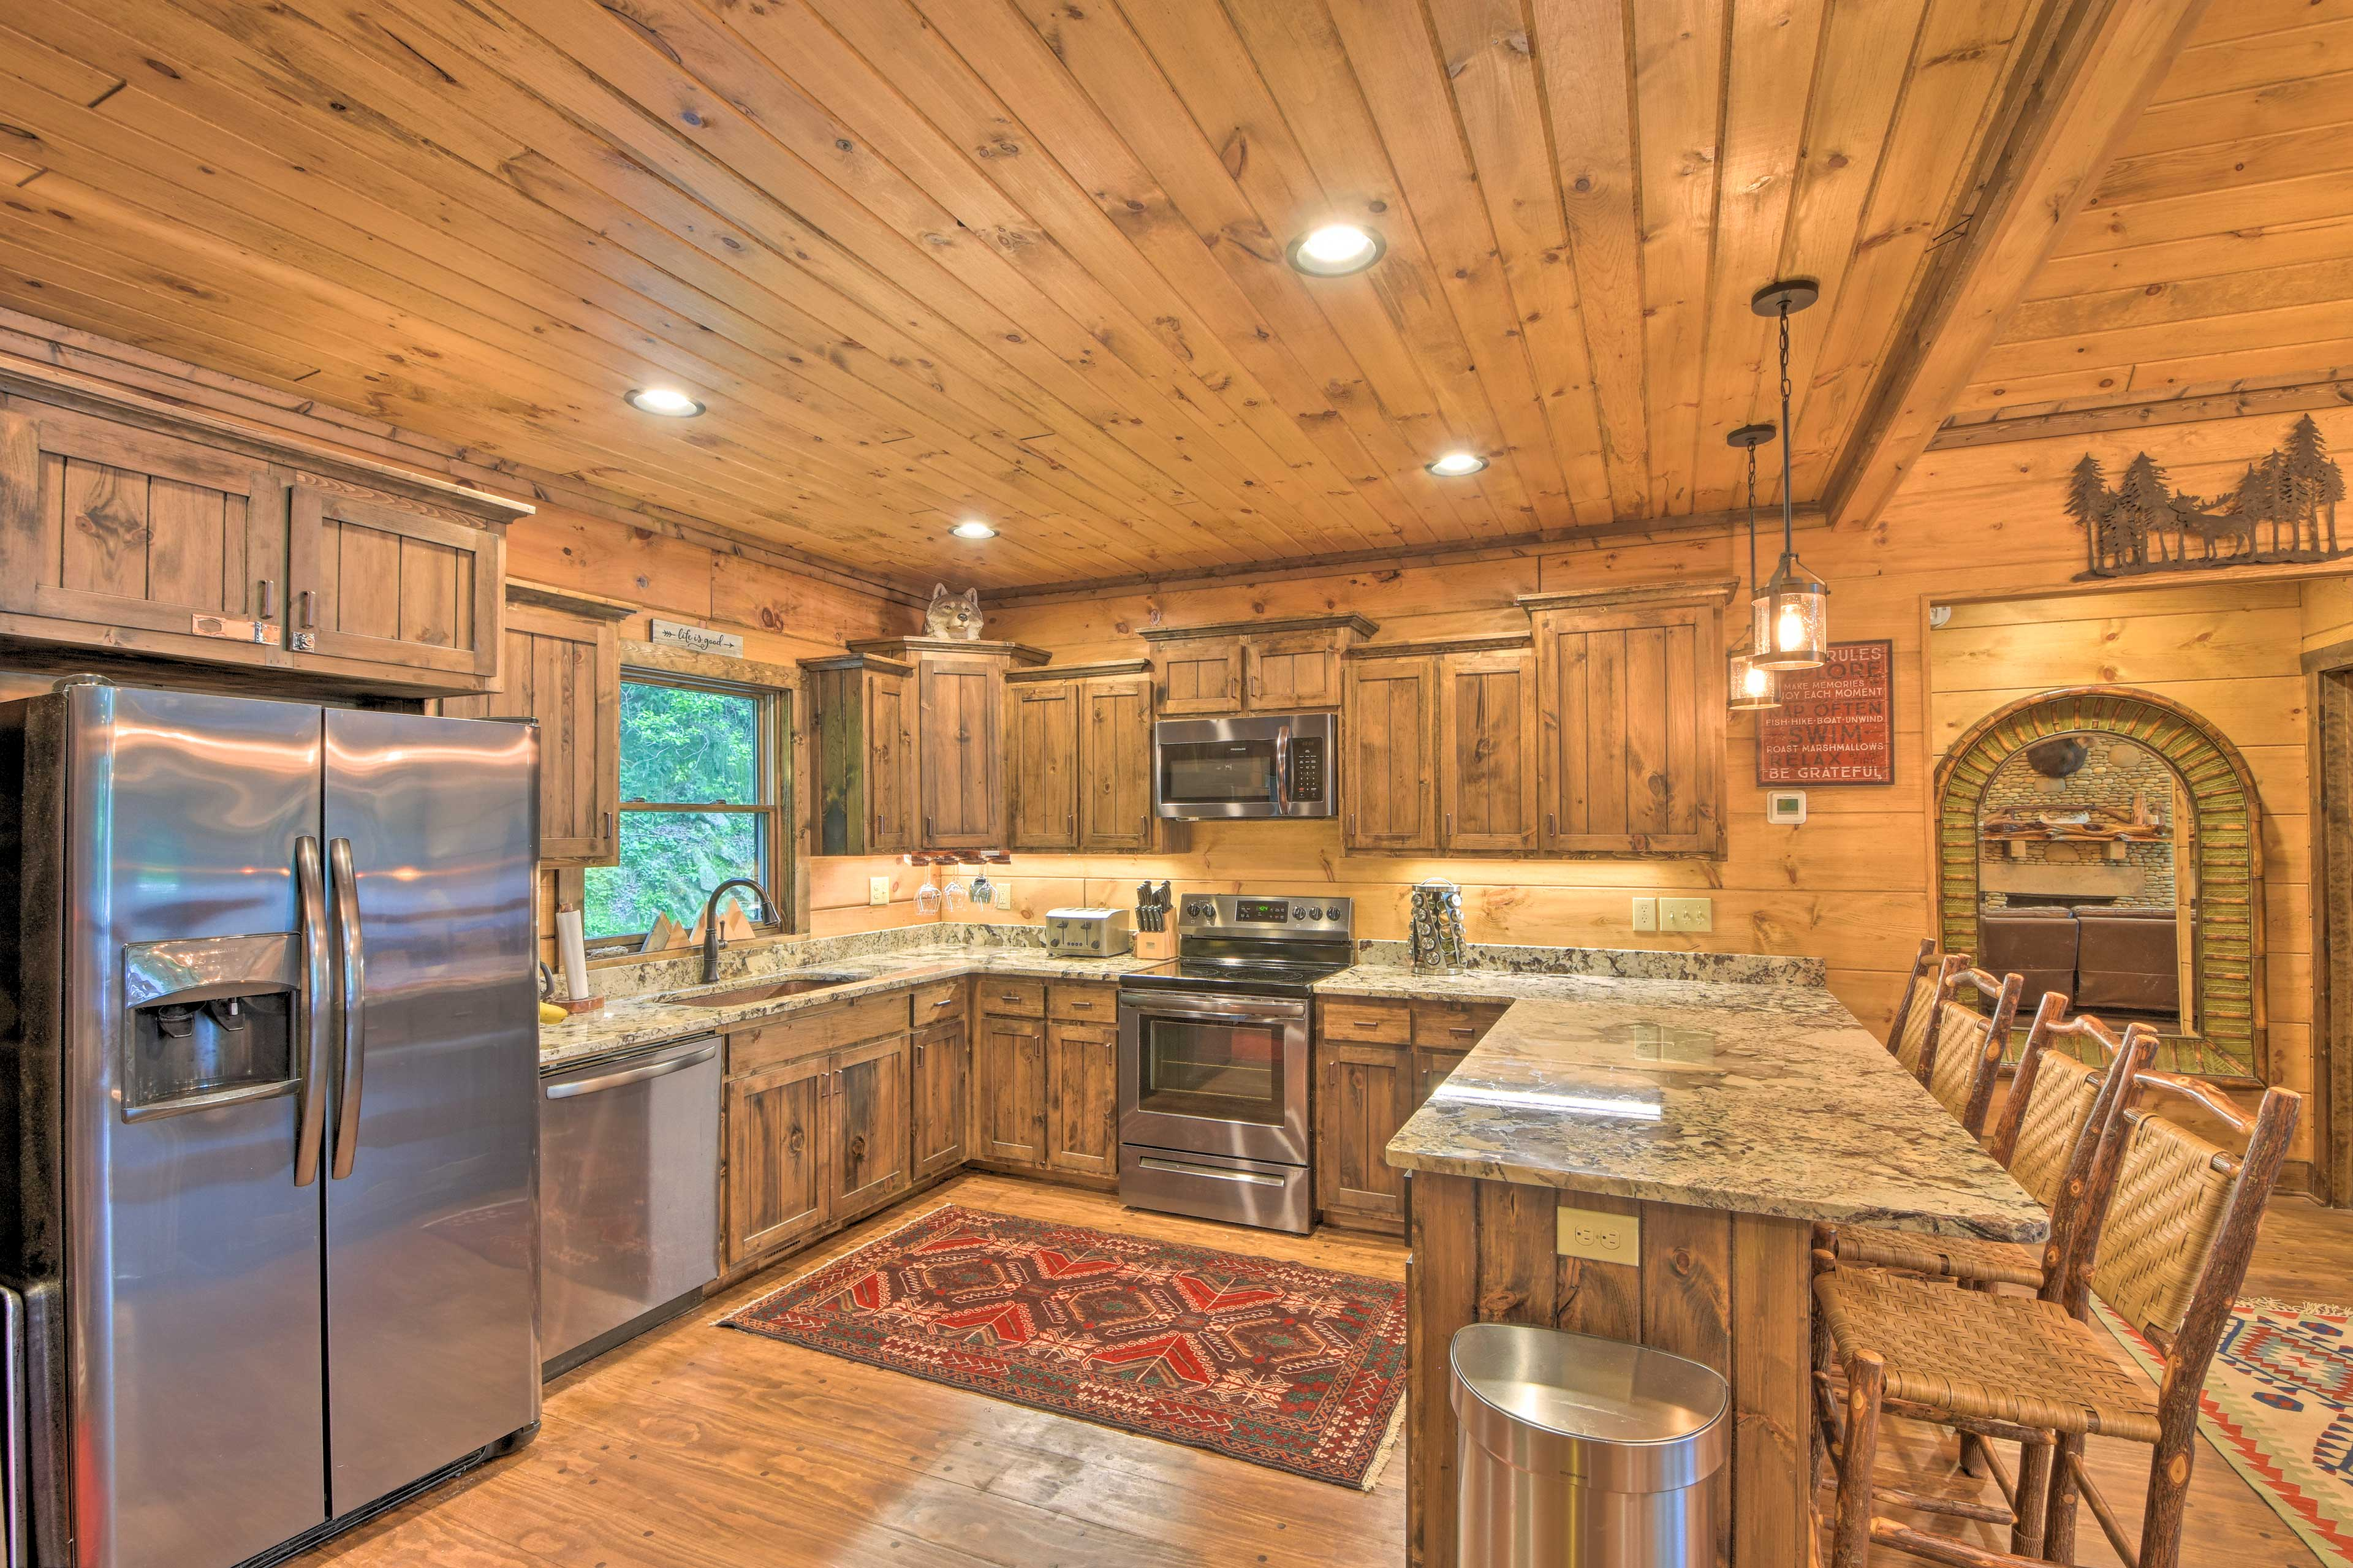 The cabin features a fully equipped kitchen complete with a dishwasher.